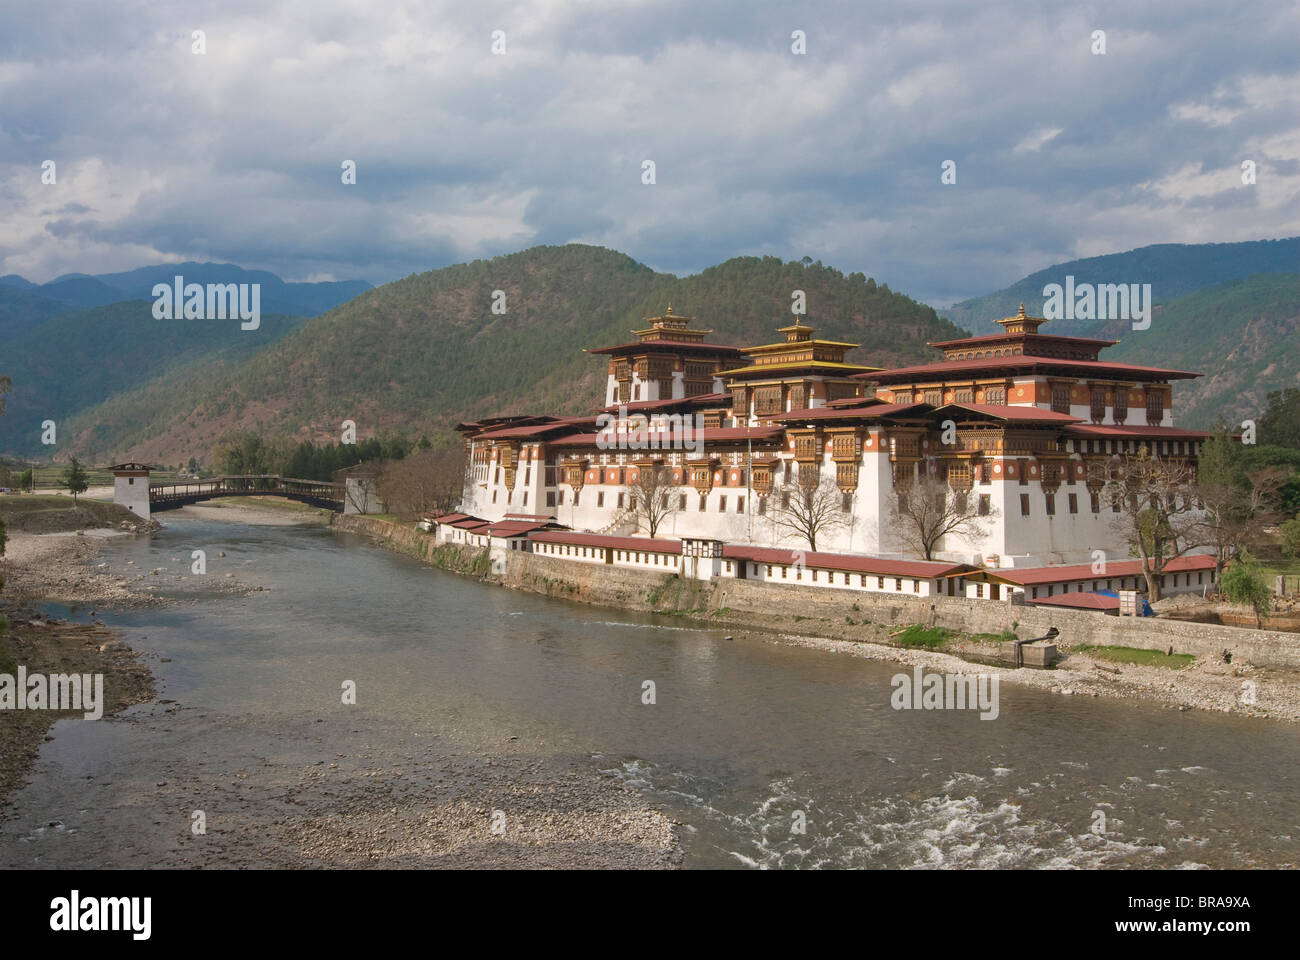 The old tsong, an old castle of Punakha, Bhutan. Asia Stock Photo